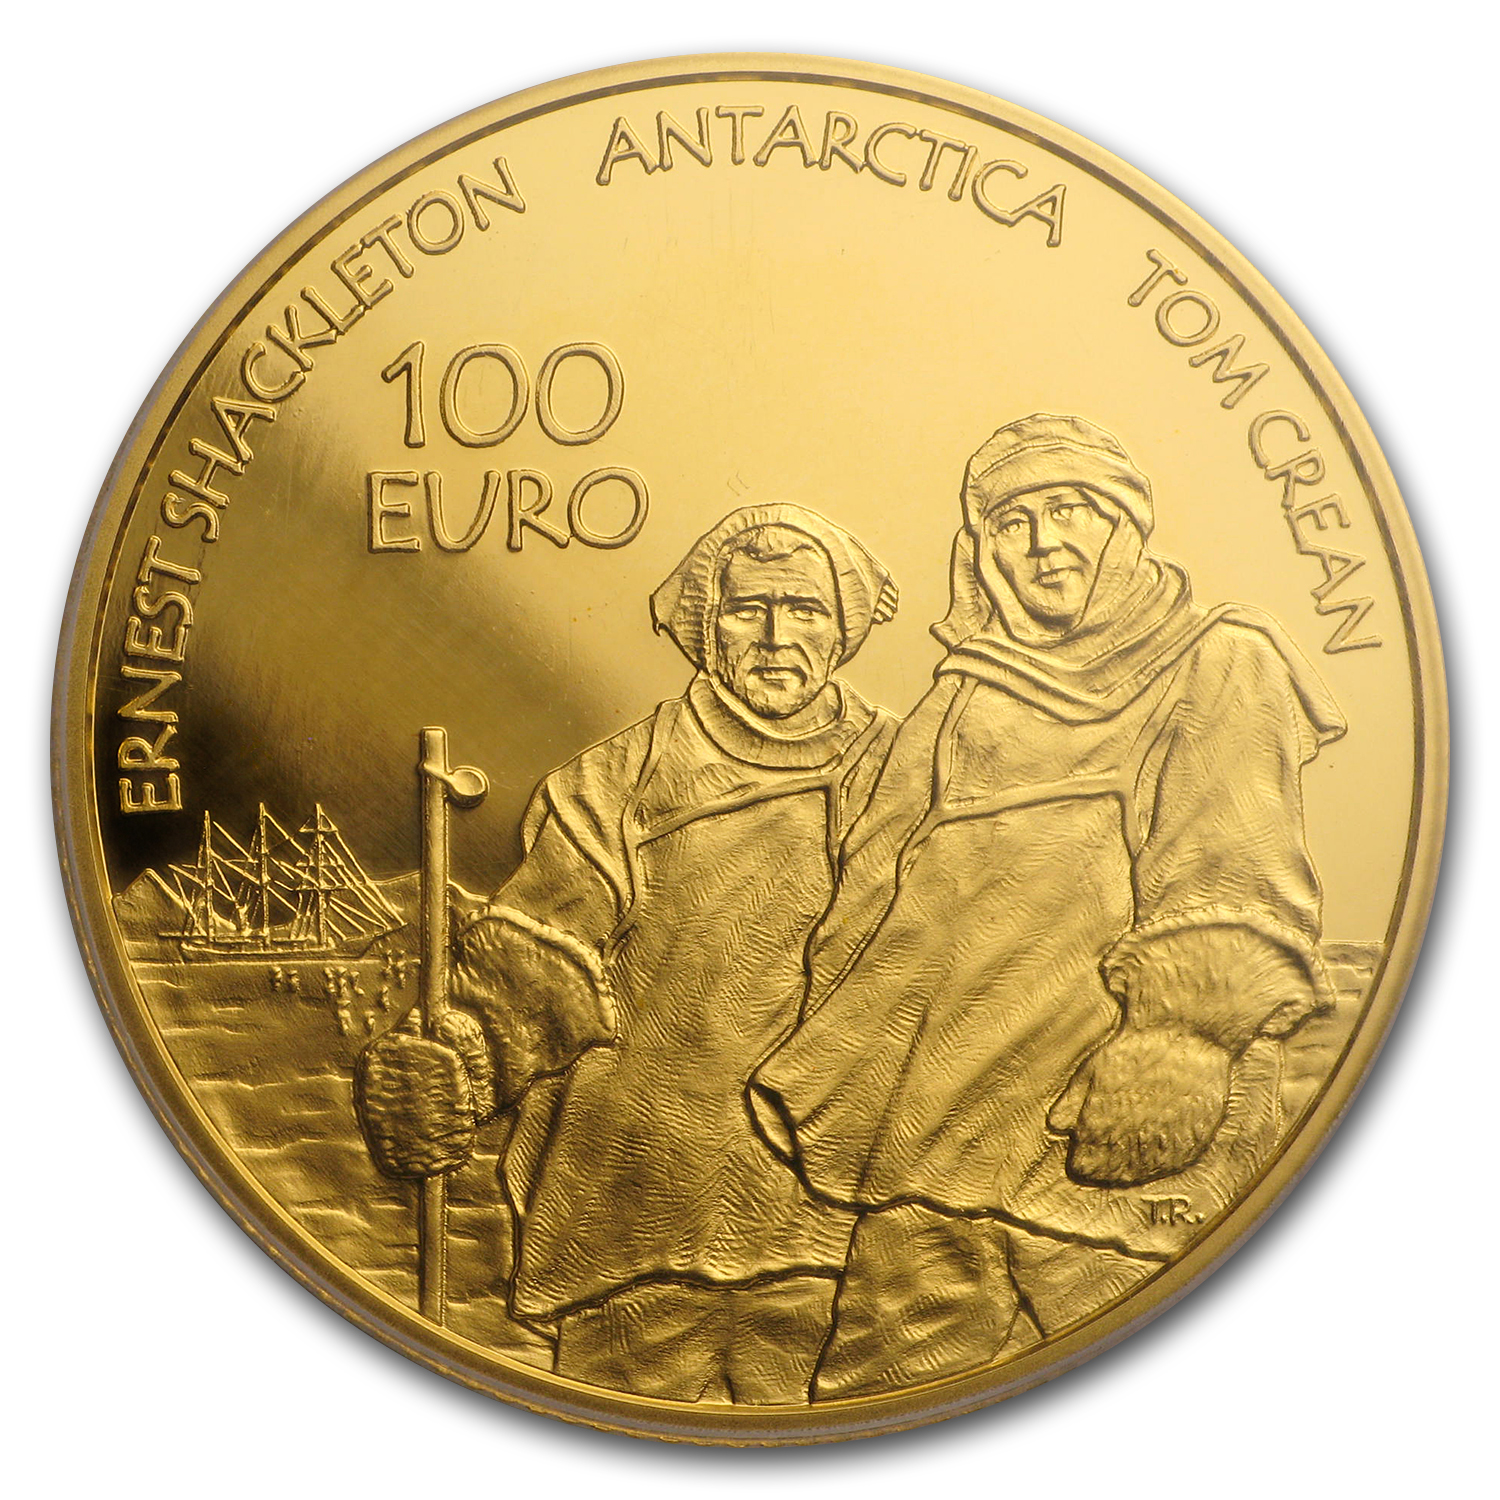 2008 Ireland Proof Gold €100 International Polar Year